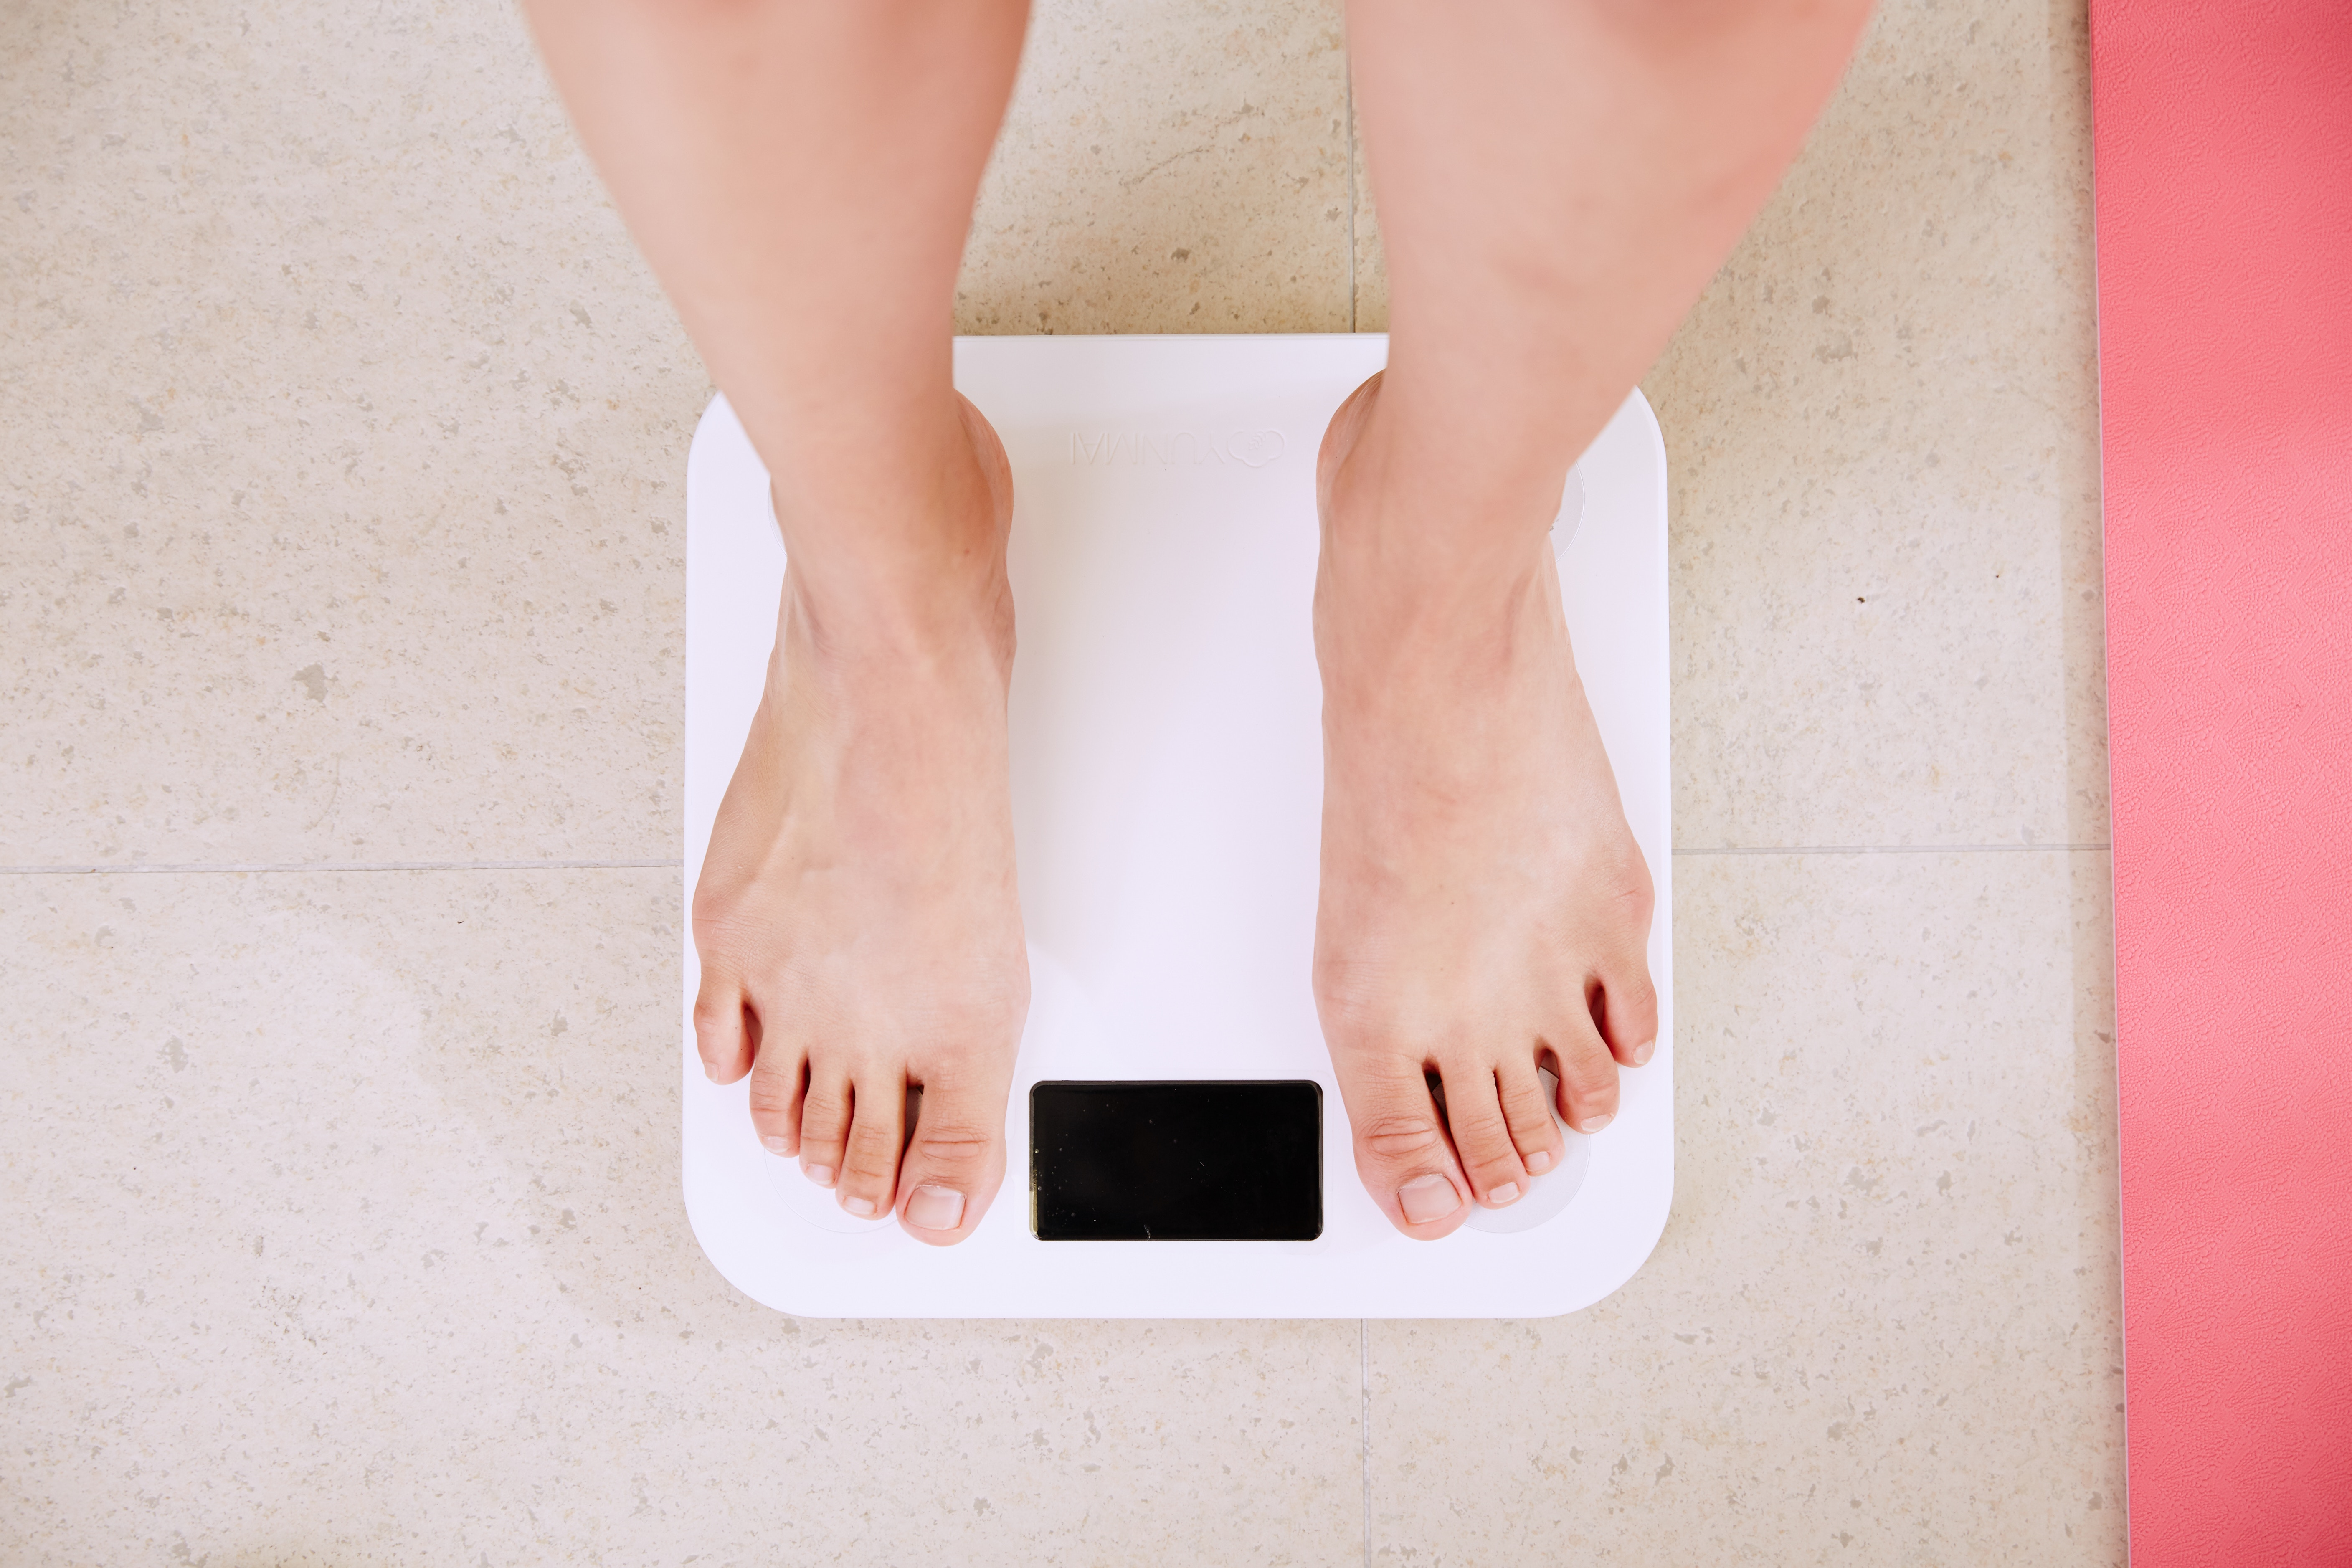 A guide to gaining weight safely